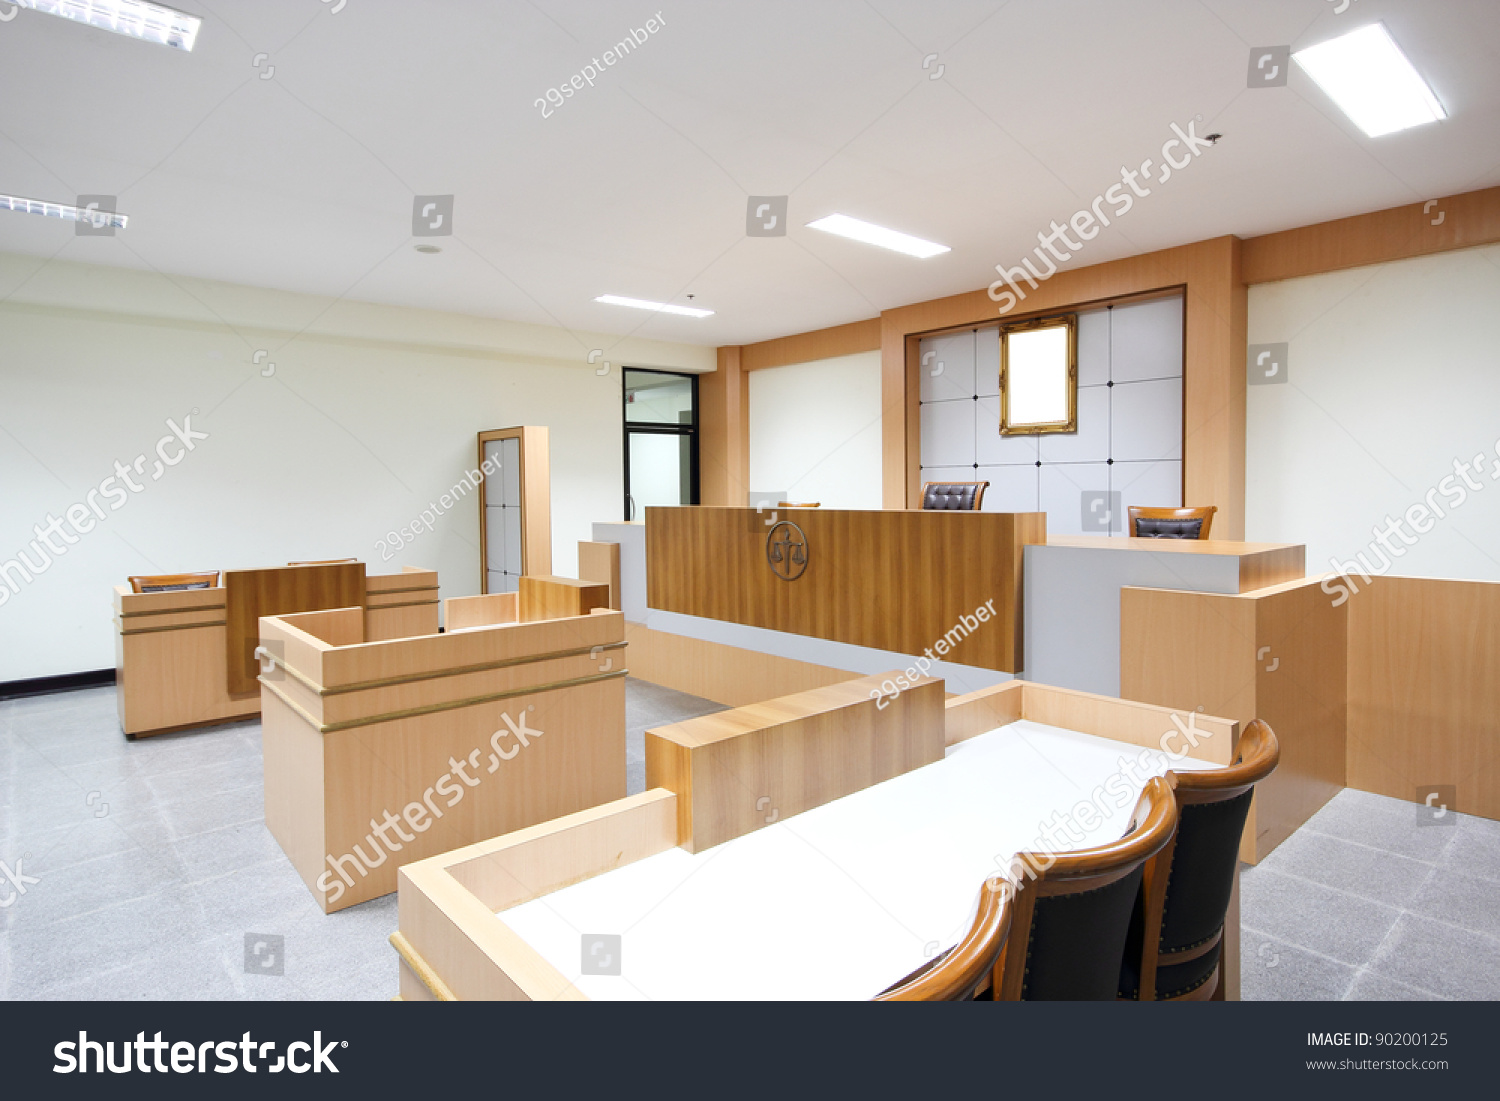 Empty Courtroom Modern Class Room University Stock Photo ...